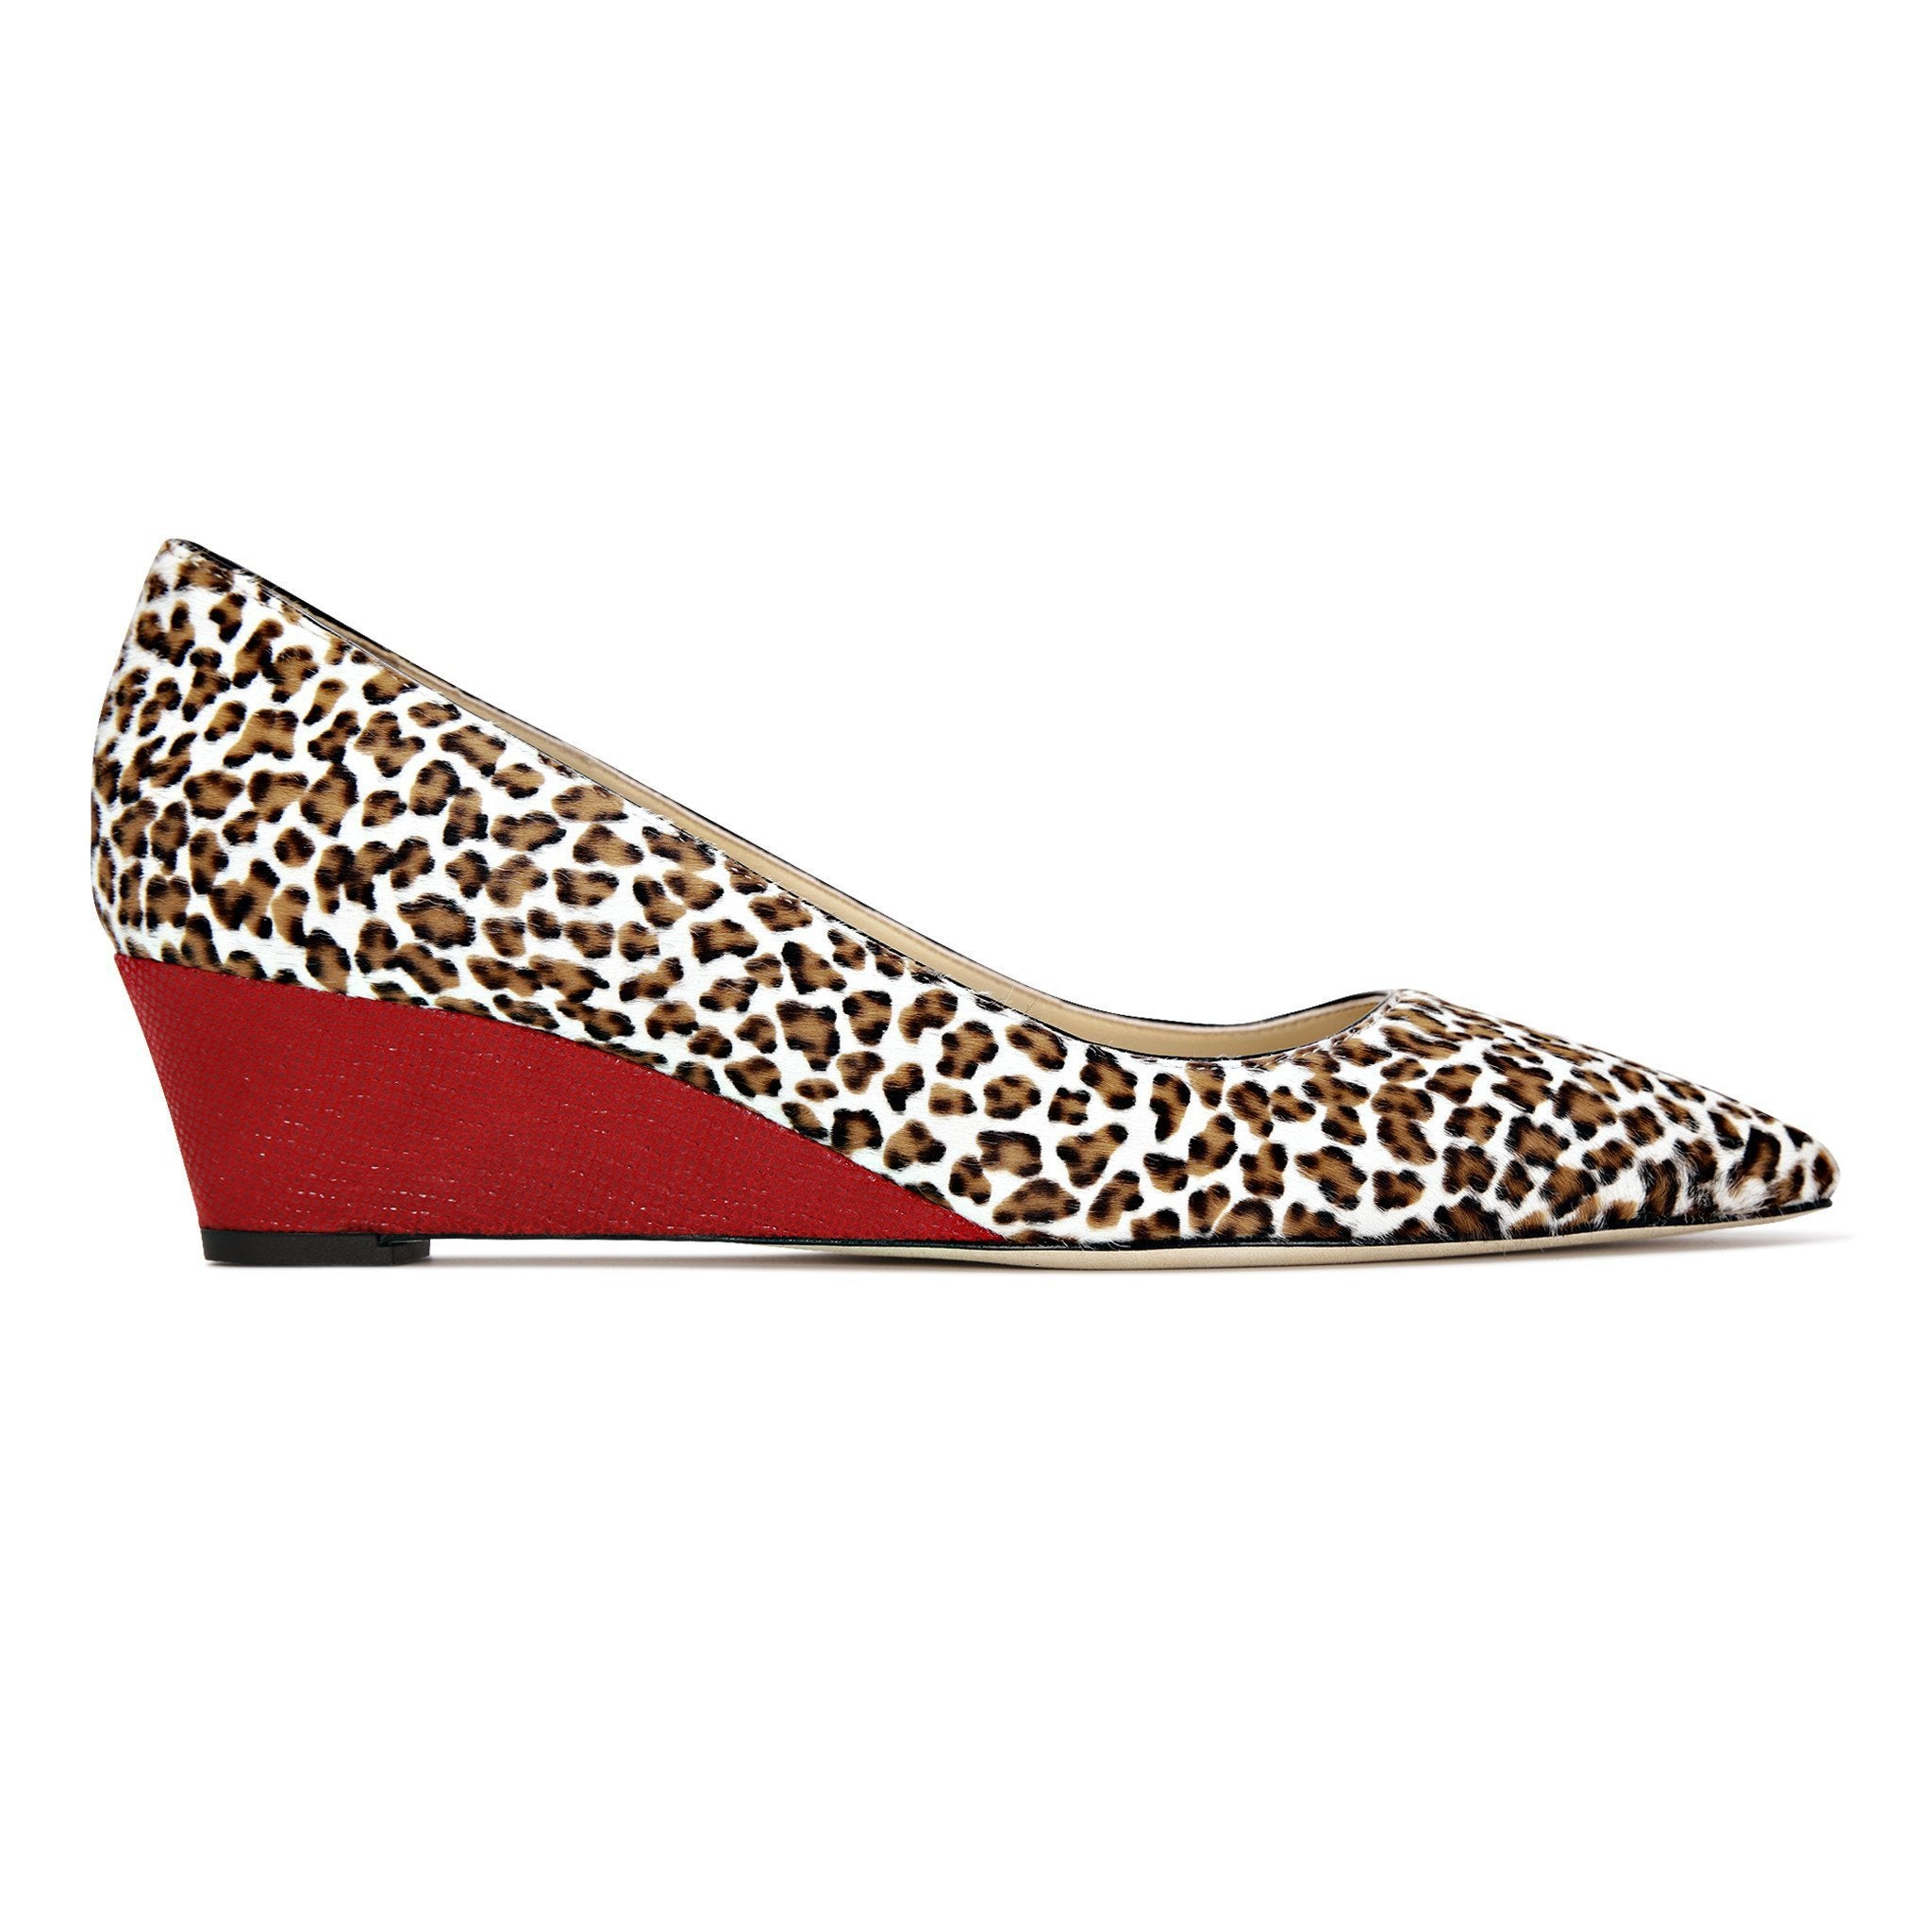 TRENTO - Calf Hair Mini Leopard + Karung Rosso, VIAJIYU - Women's Hand Made Sustainable Luxury Shoes. Made in Italy. Made to Order.